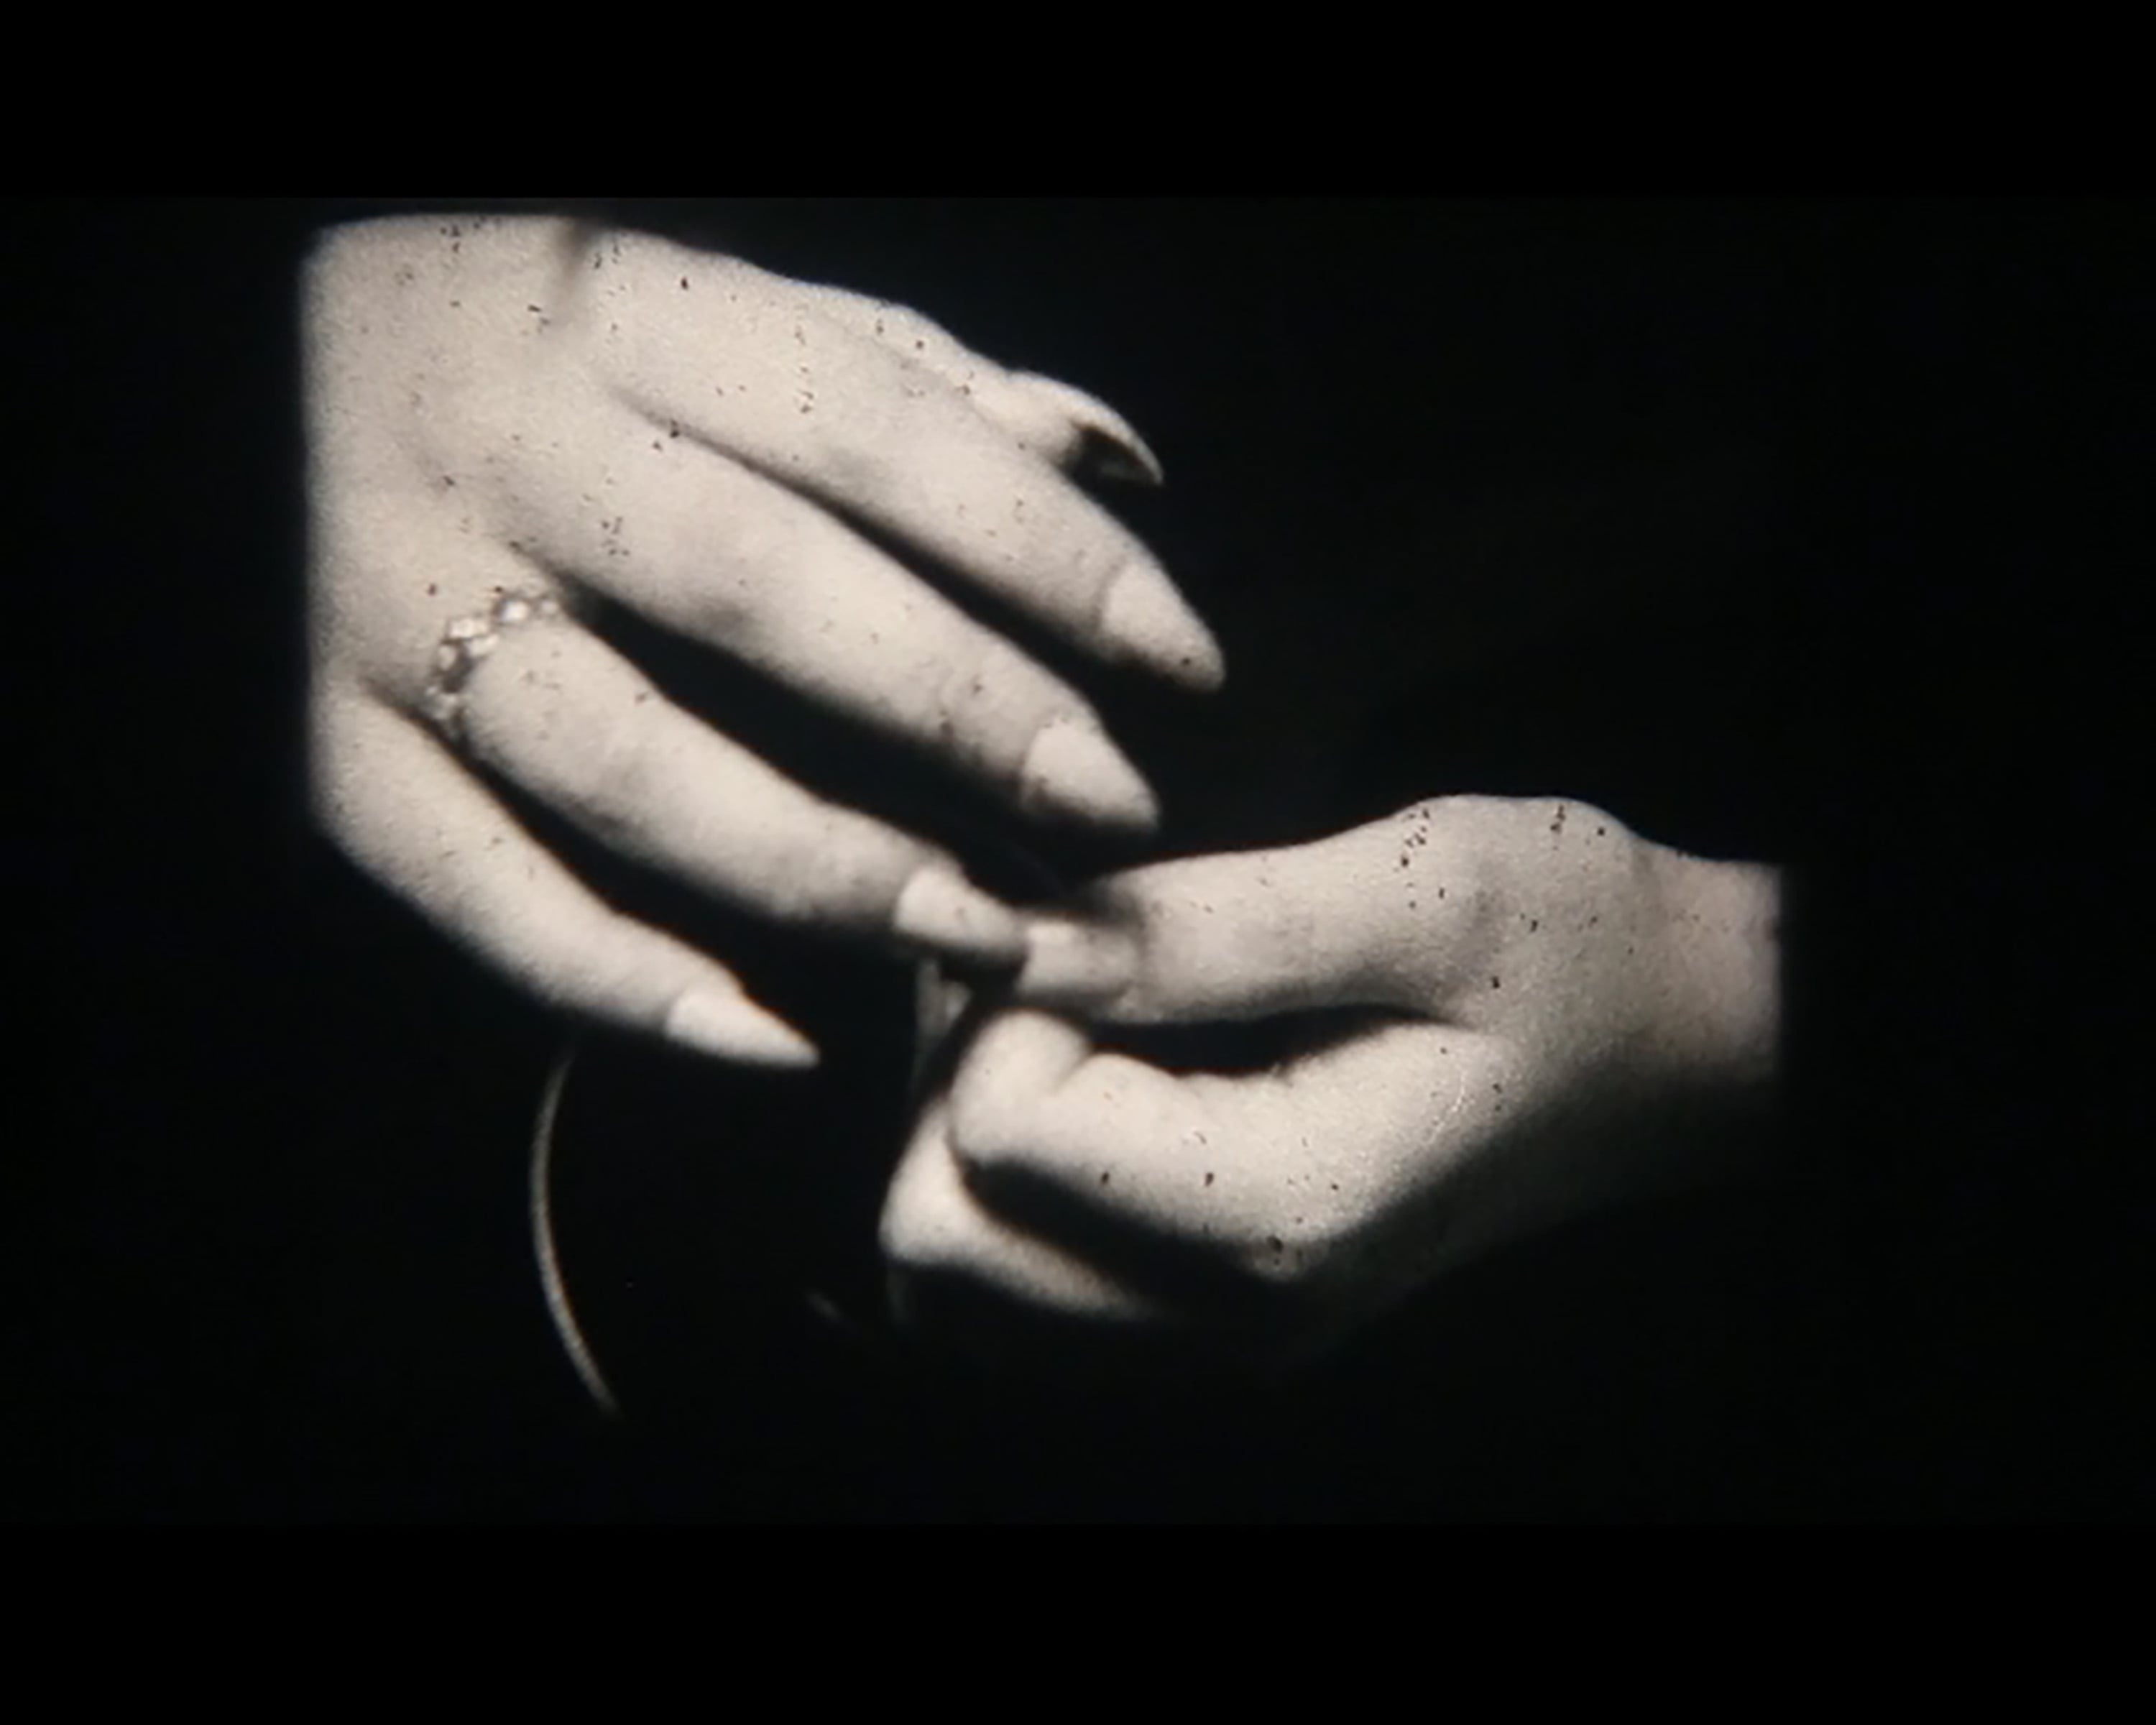 Black and white photo of a close up of someones hands